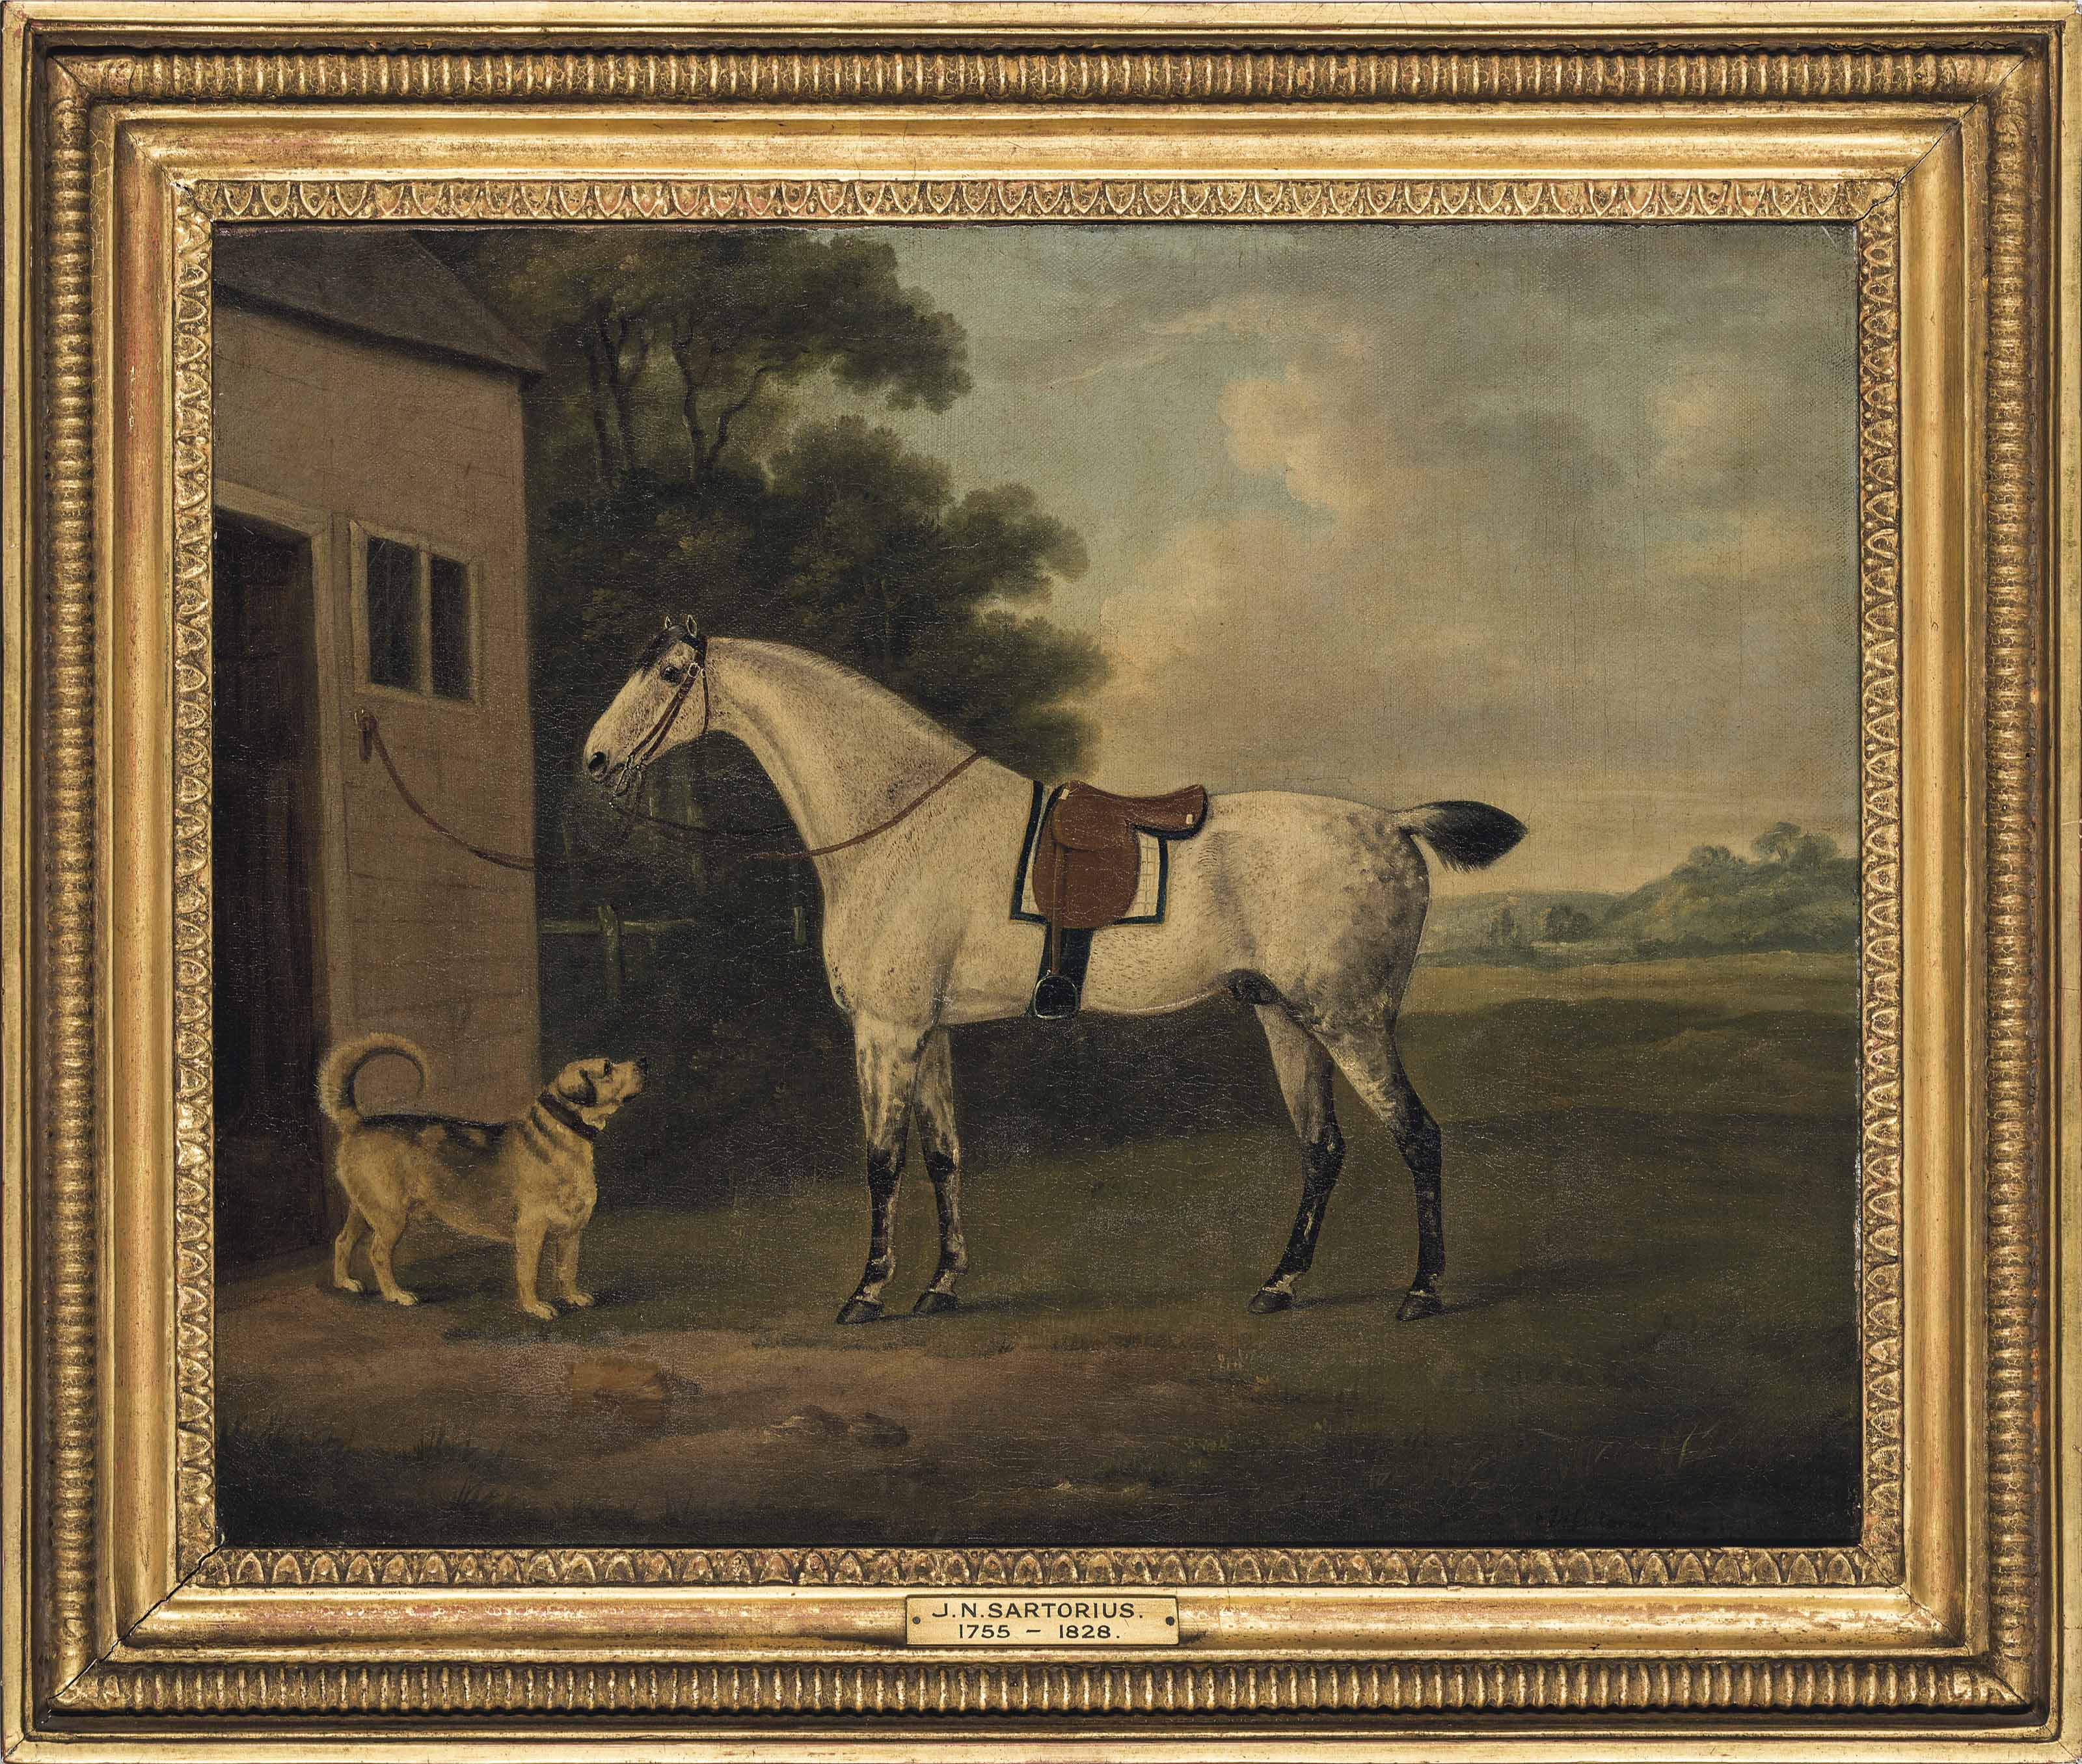 A favourite dappled grey hunter, and hound, in a landscape